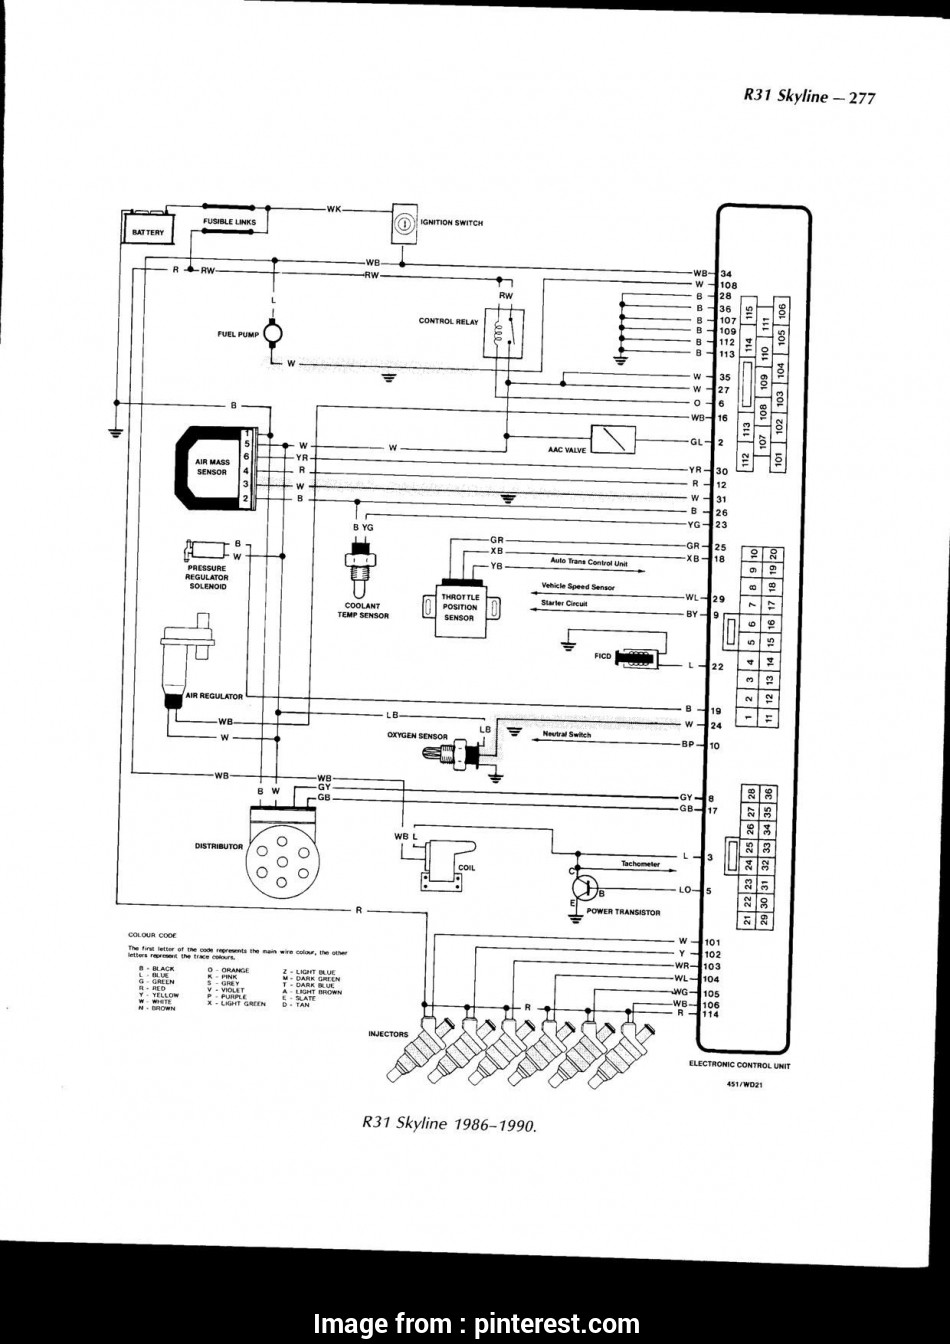 hight resolution of 110 electrical wiring diagram nissan 1400 electrical wiring diagram nissan pinterest 110 electrical wiring